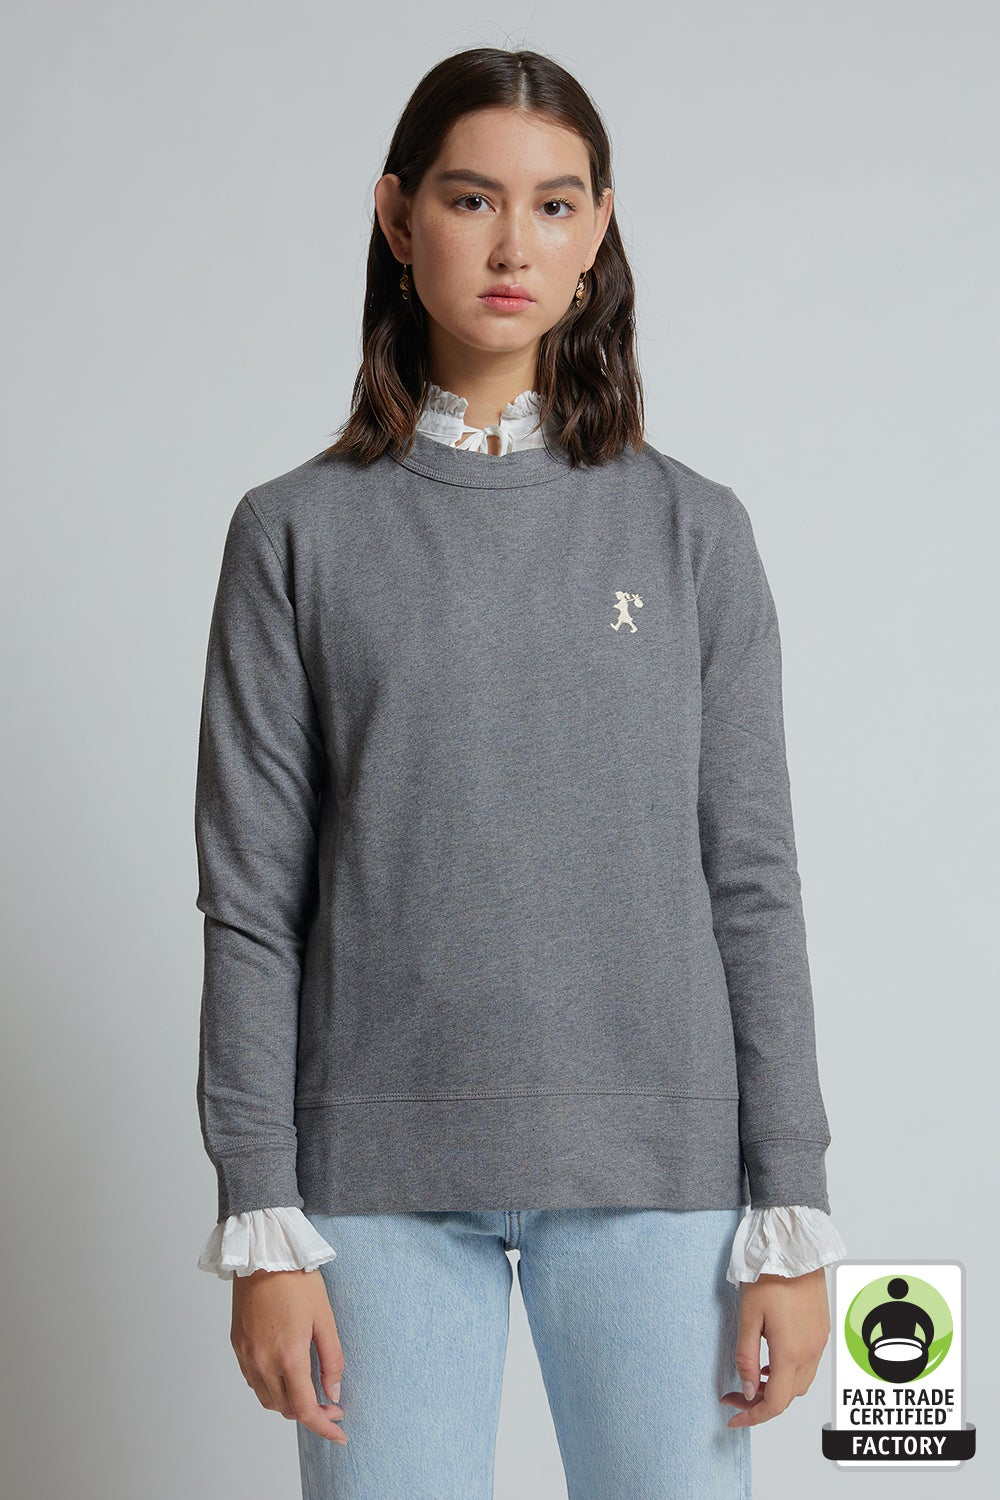 Embroidered Runaway Girl Organic Cotton Sweatshirt